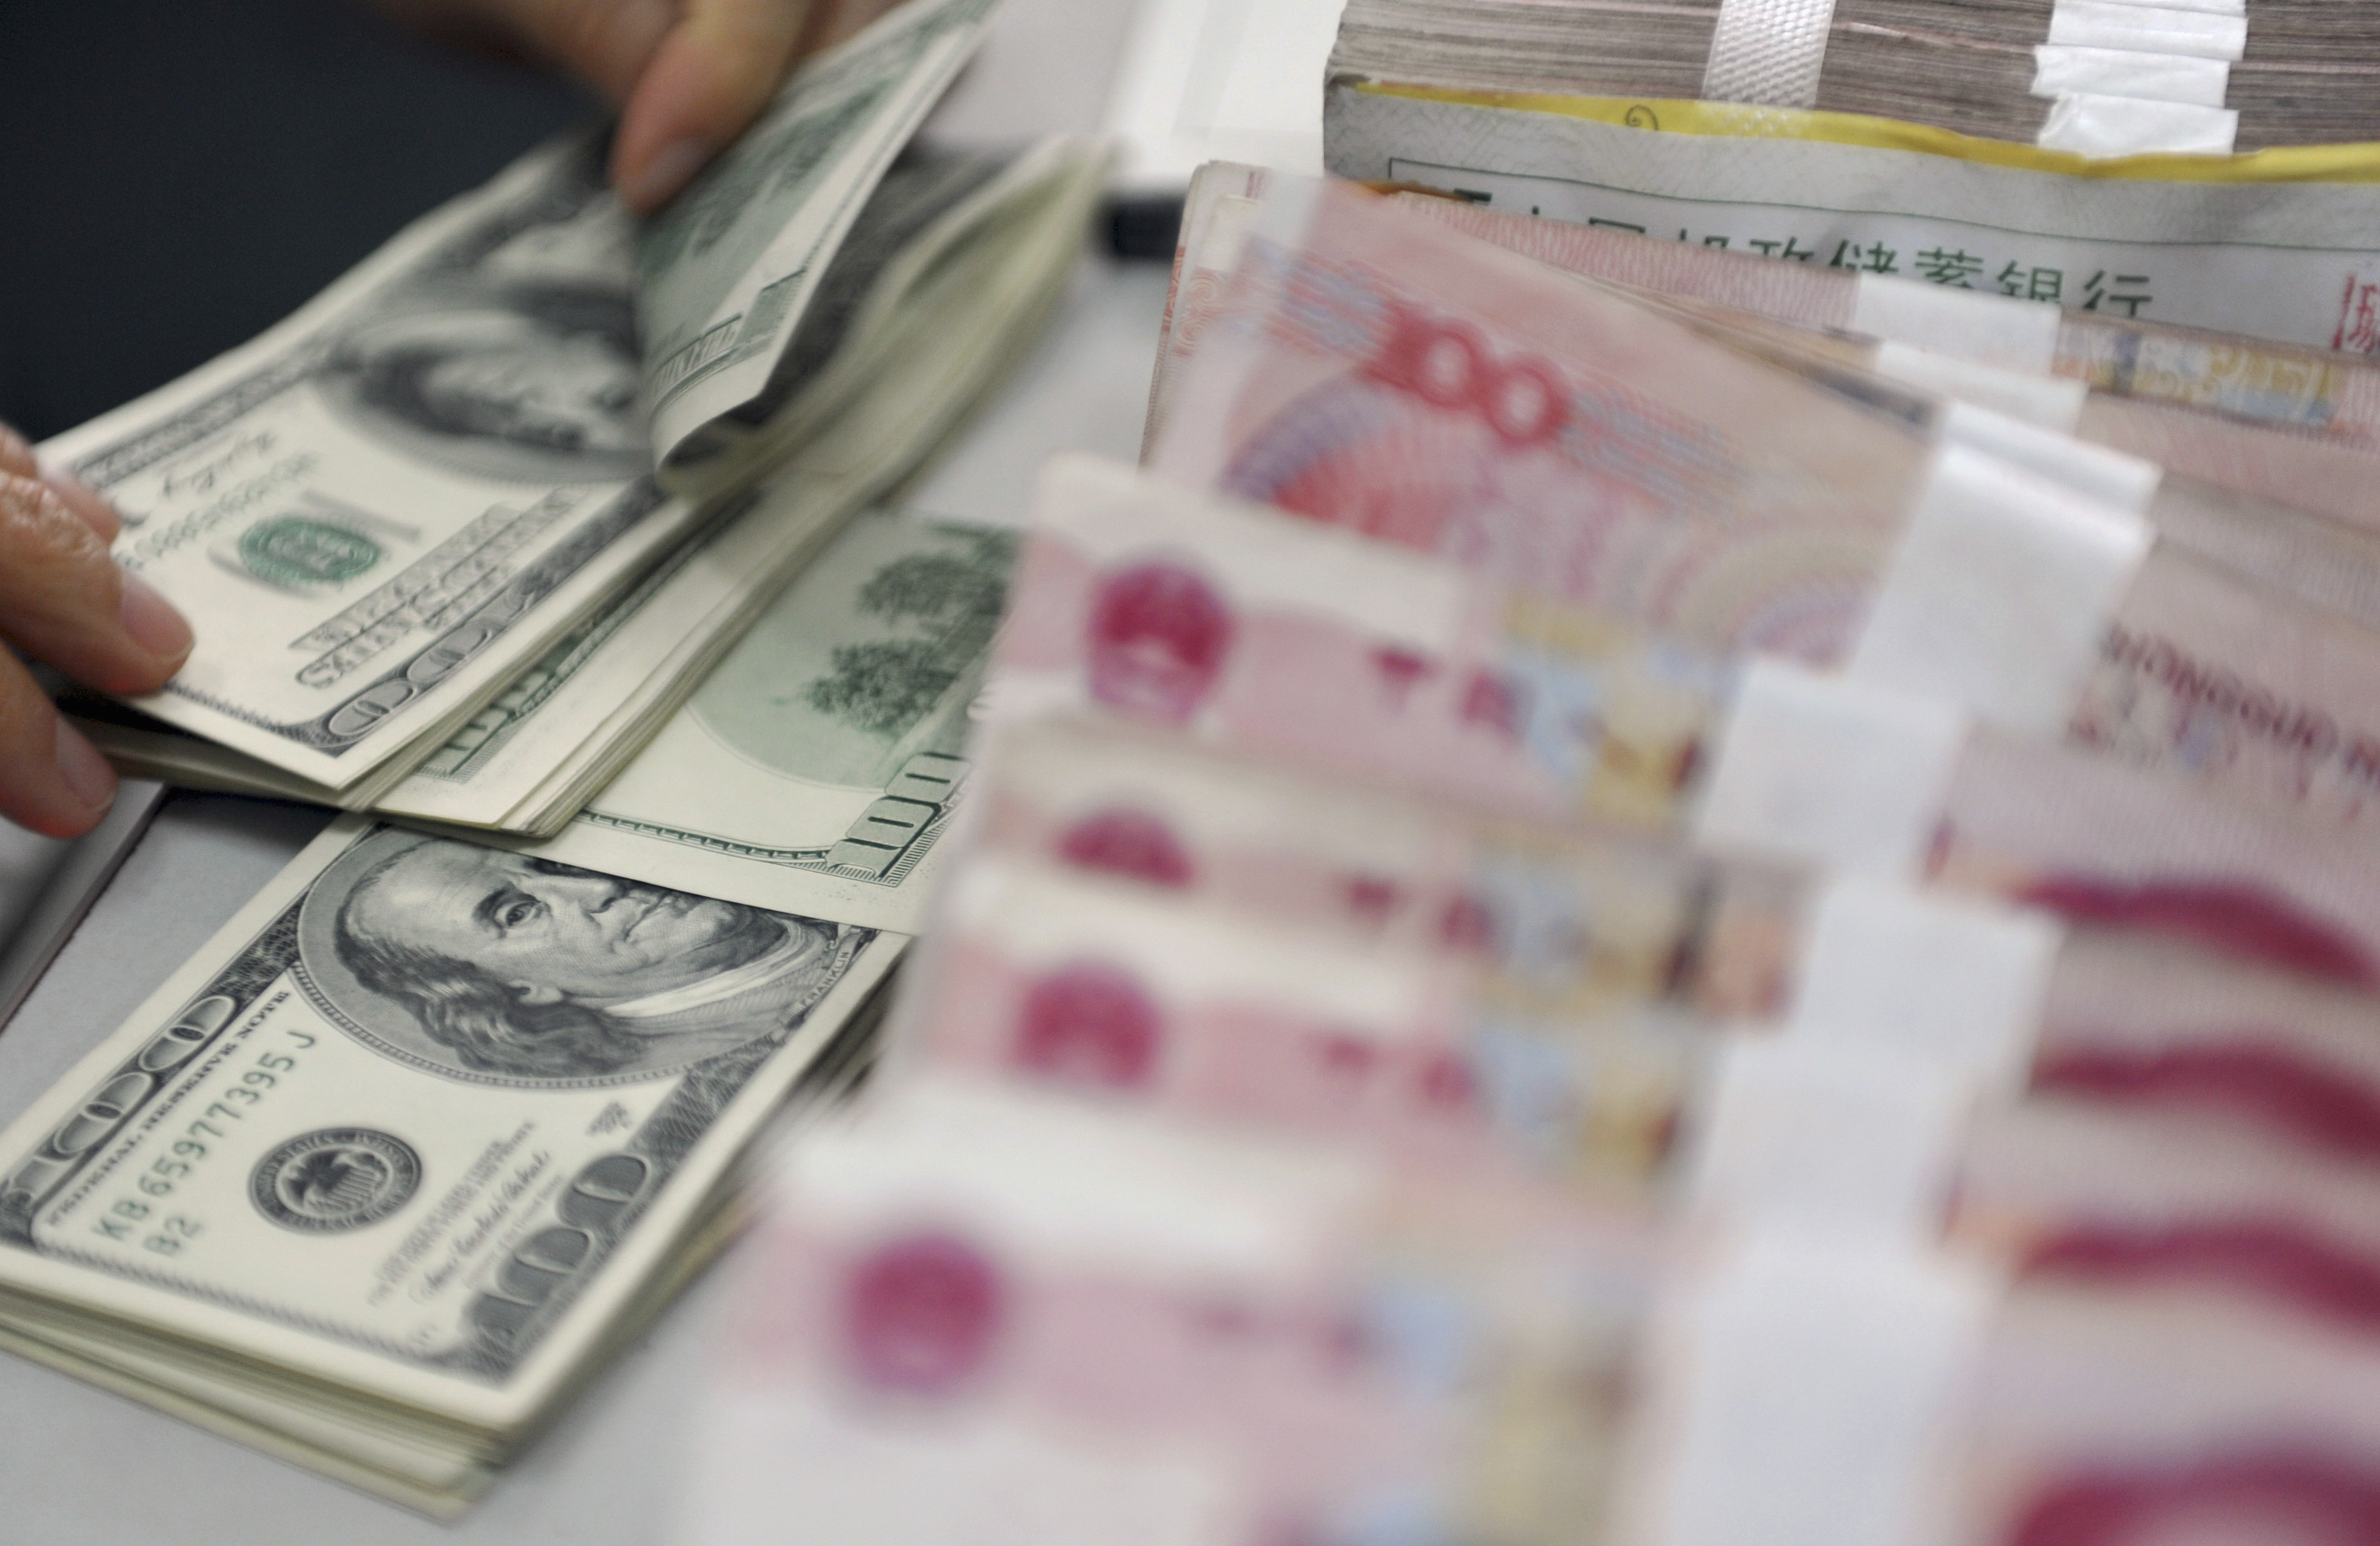 A clerk counts U.S. dollar banknotes after counting Chinese 100 Yuan banknotes at a branch of the Agricultural Bank of China in Qionghai, China's southmost Hainan province, November 12, 2012.